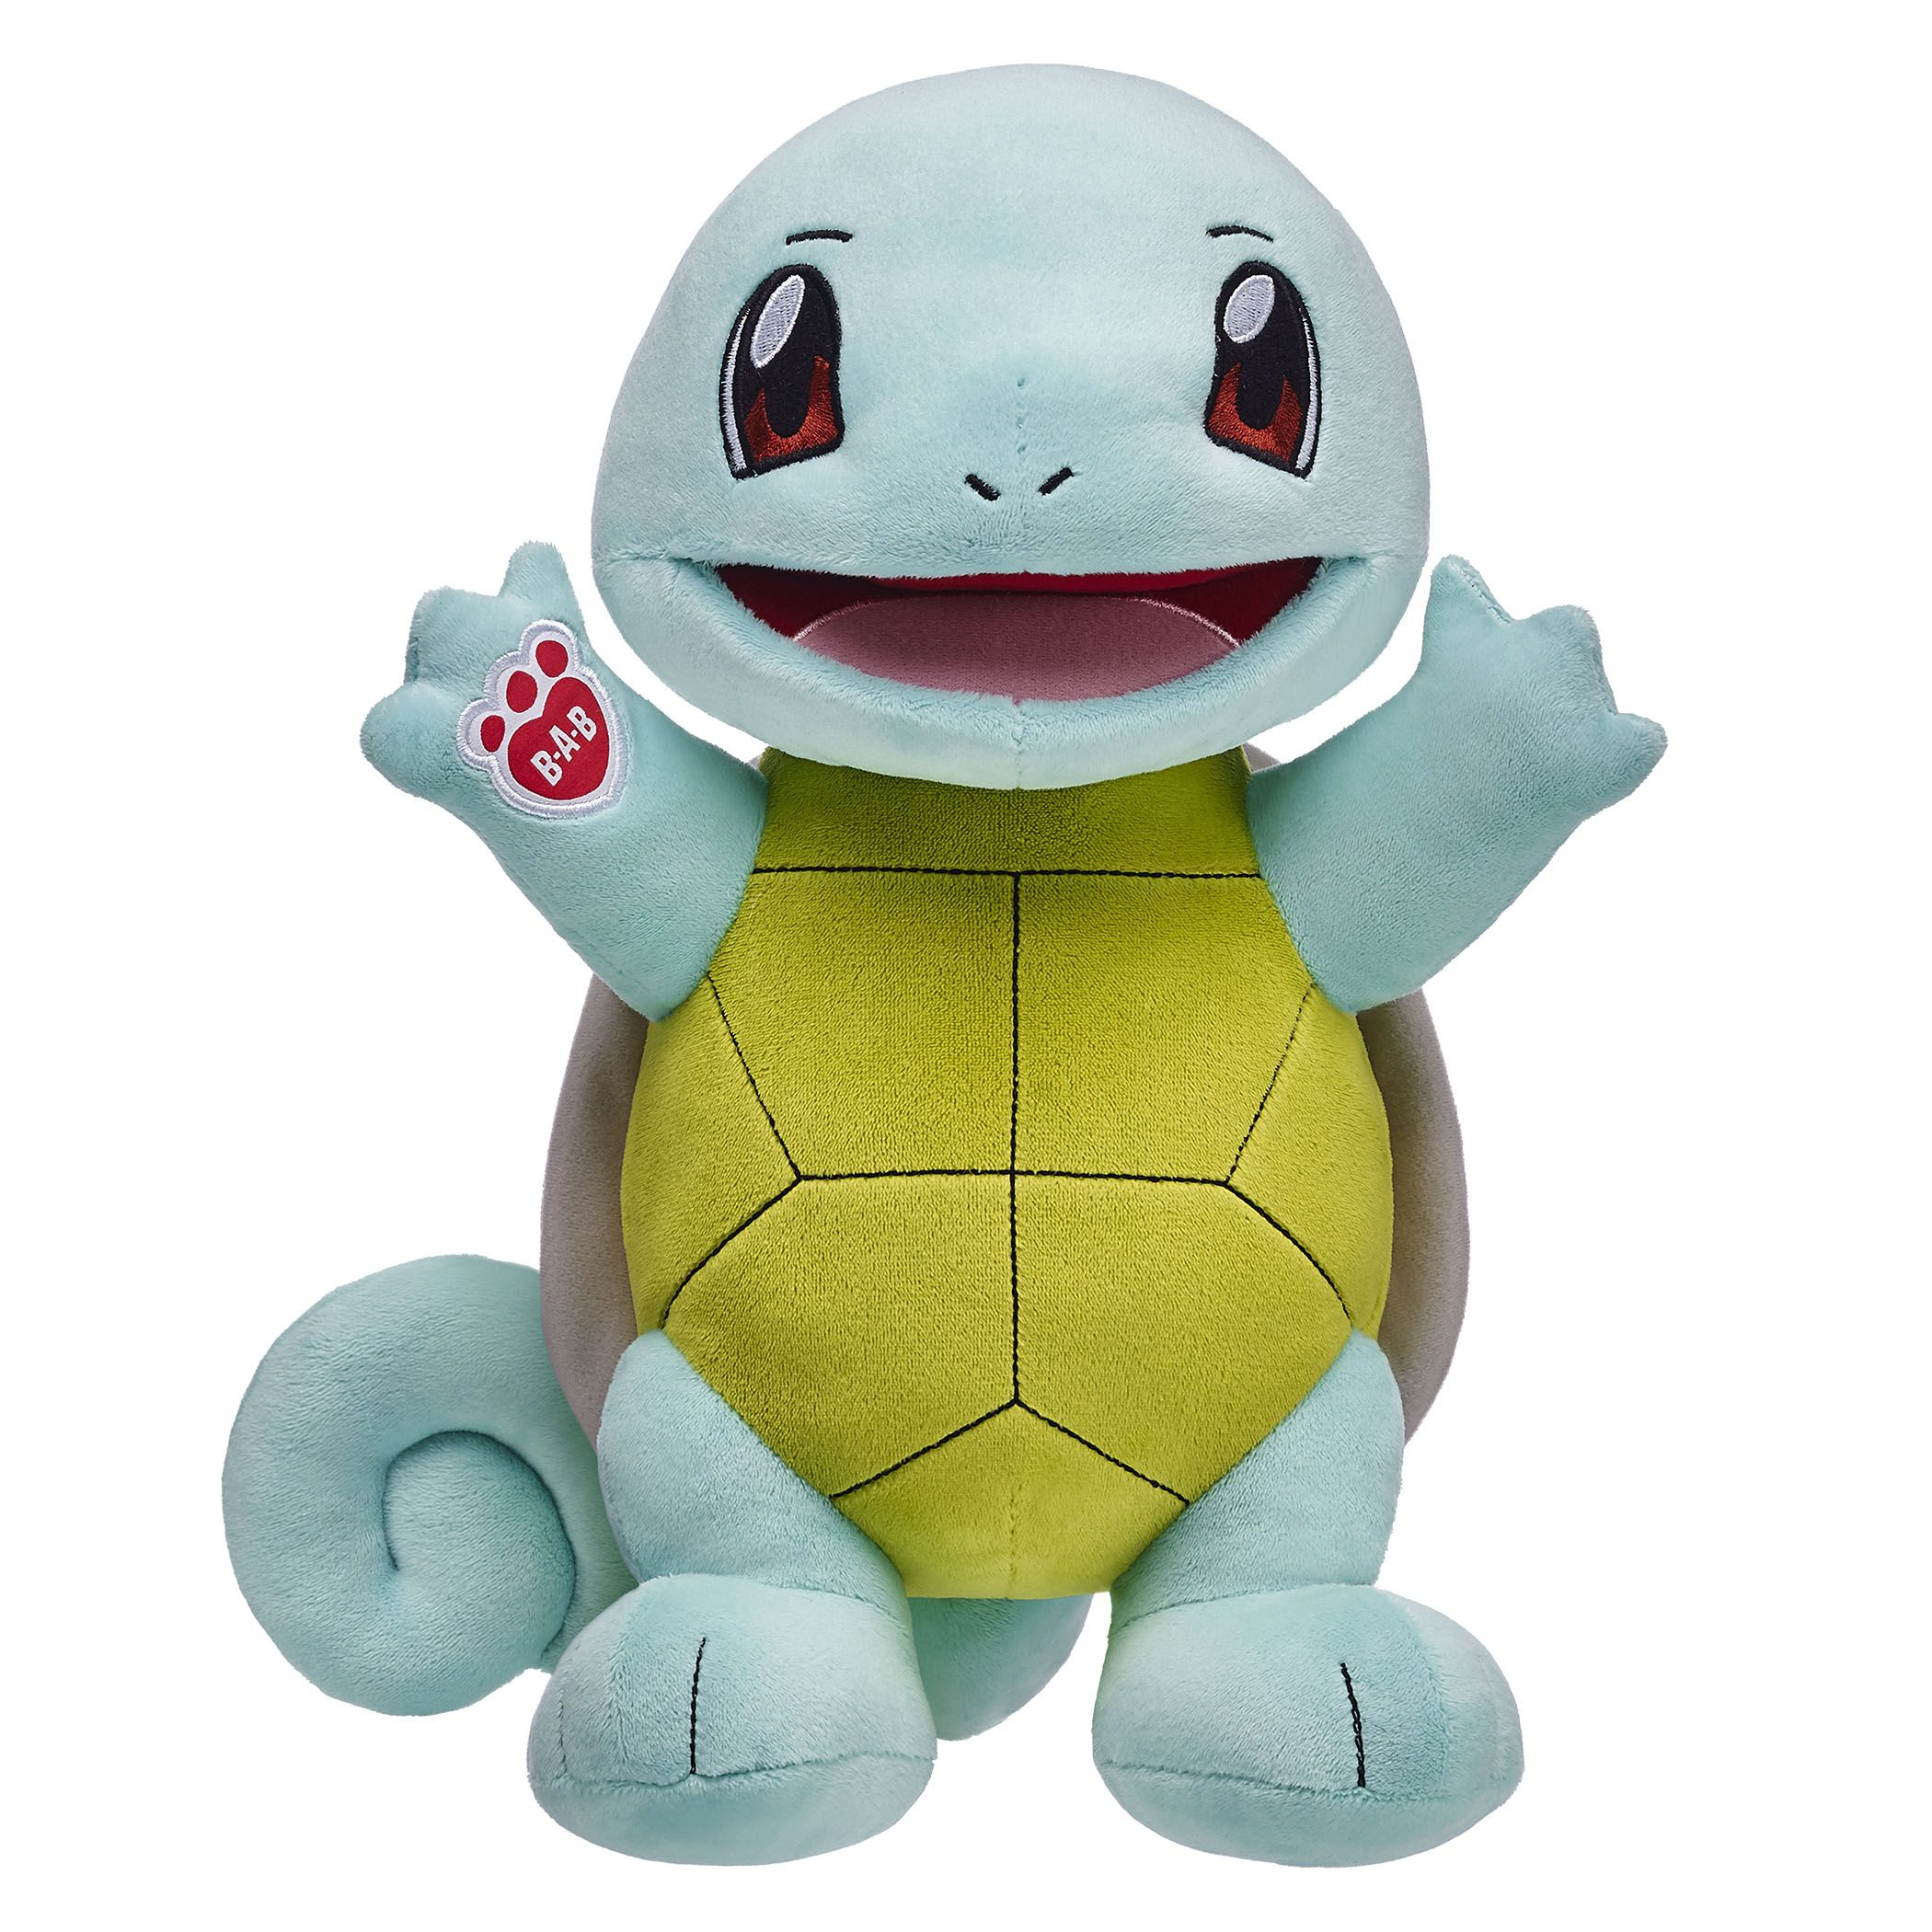 a7987627ba0 Exclusive  Build-A-Bear Chooses Squirtle as Next Pokemon Plush ...